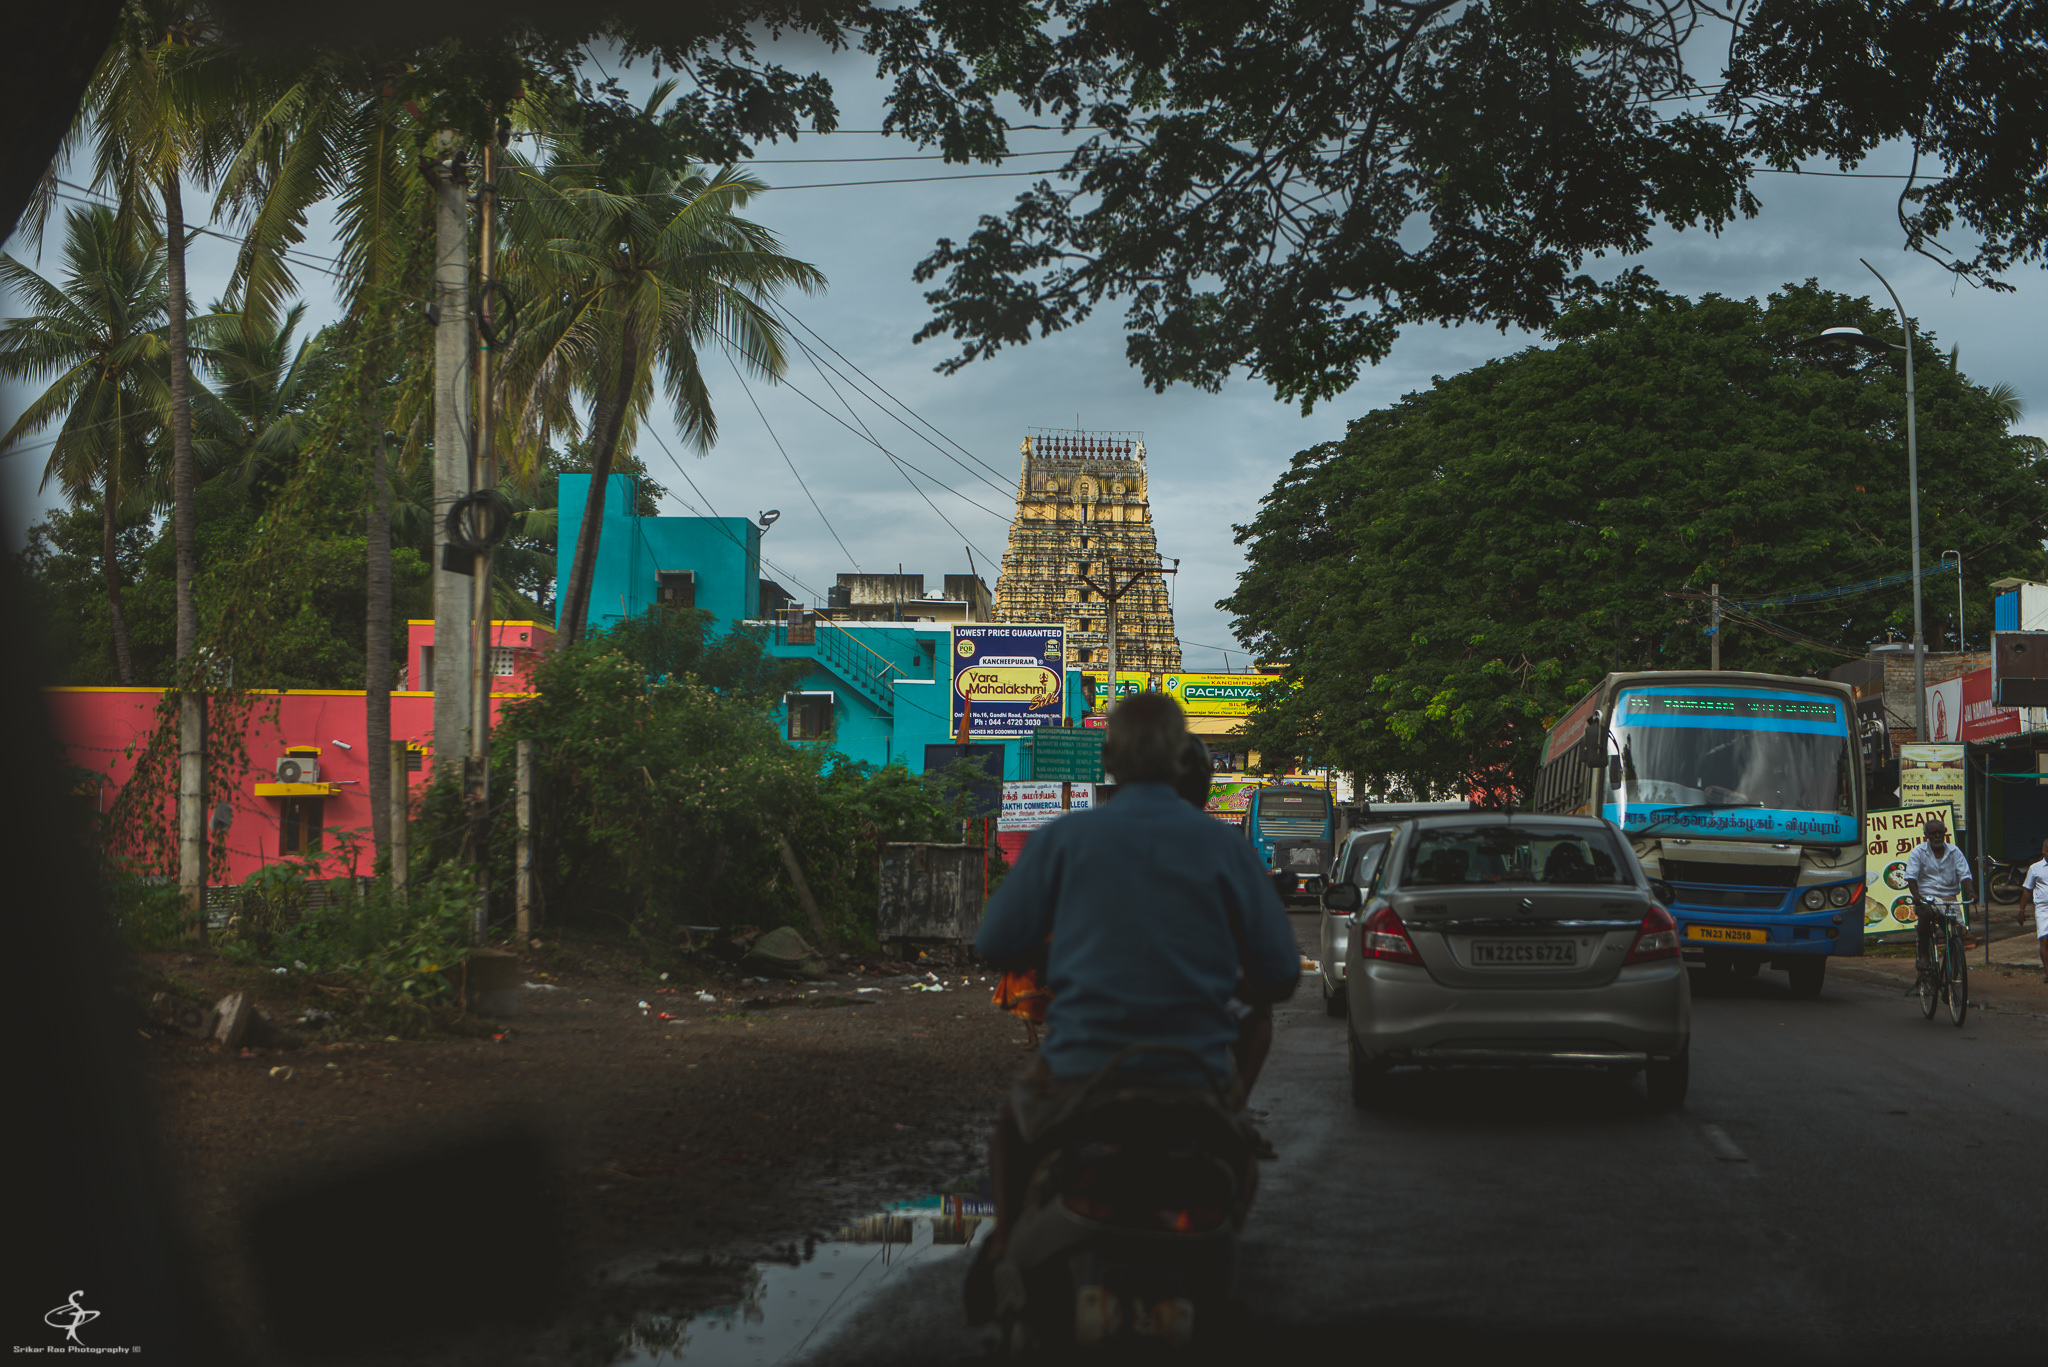 Travel Photographer to kanchipuram & mahabalipuram